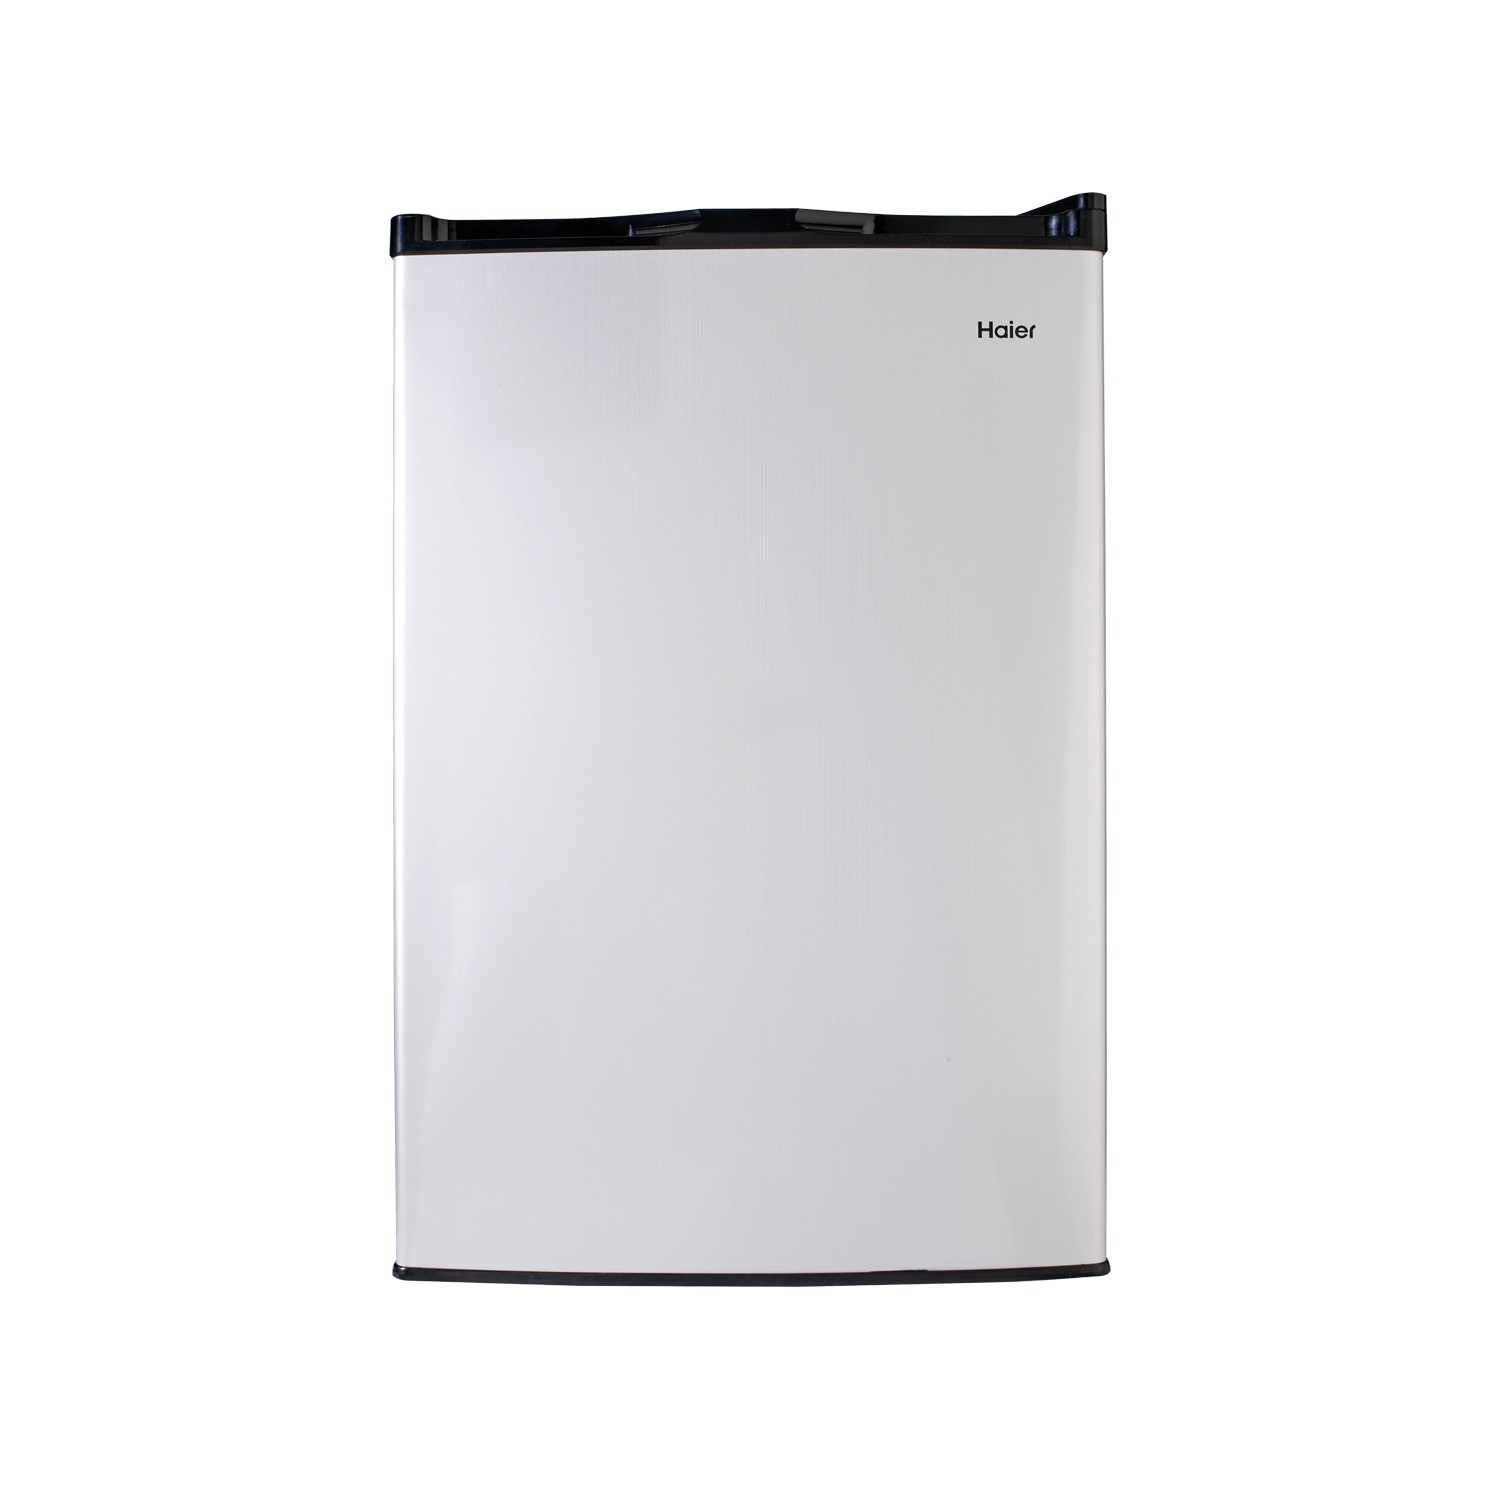 Haier 4.5 Cu Ft Compact Refrigerator, Virtual Steel, HC46SF10SV